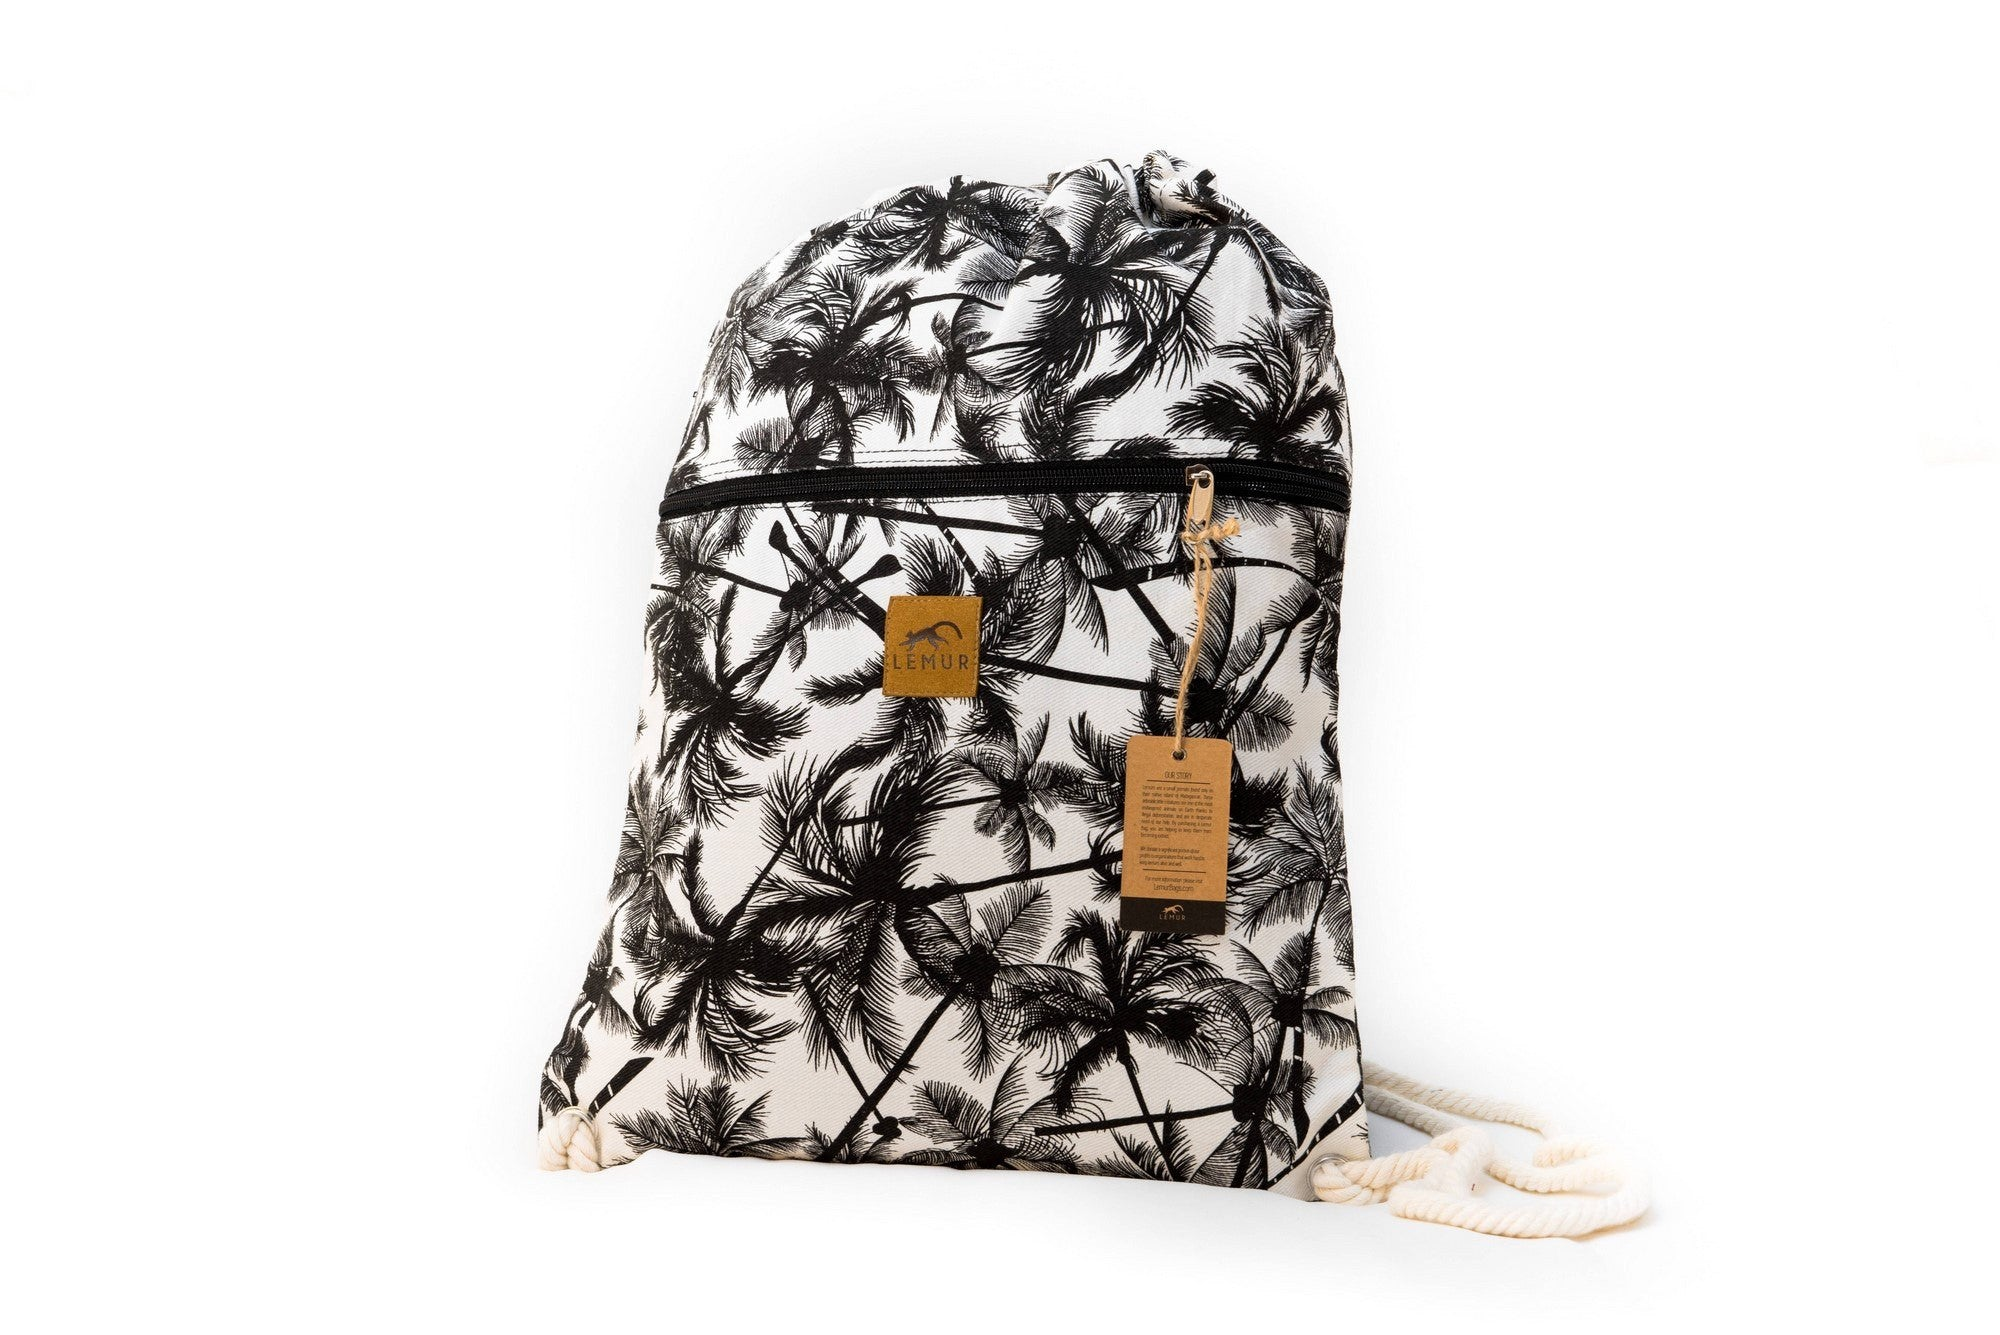 Drawstring Backpack - Drawstring Backpack - Canvas Cinch Daypack Sackpack  By Lemur Bags (Tropical Palm 27d0e3484c661